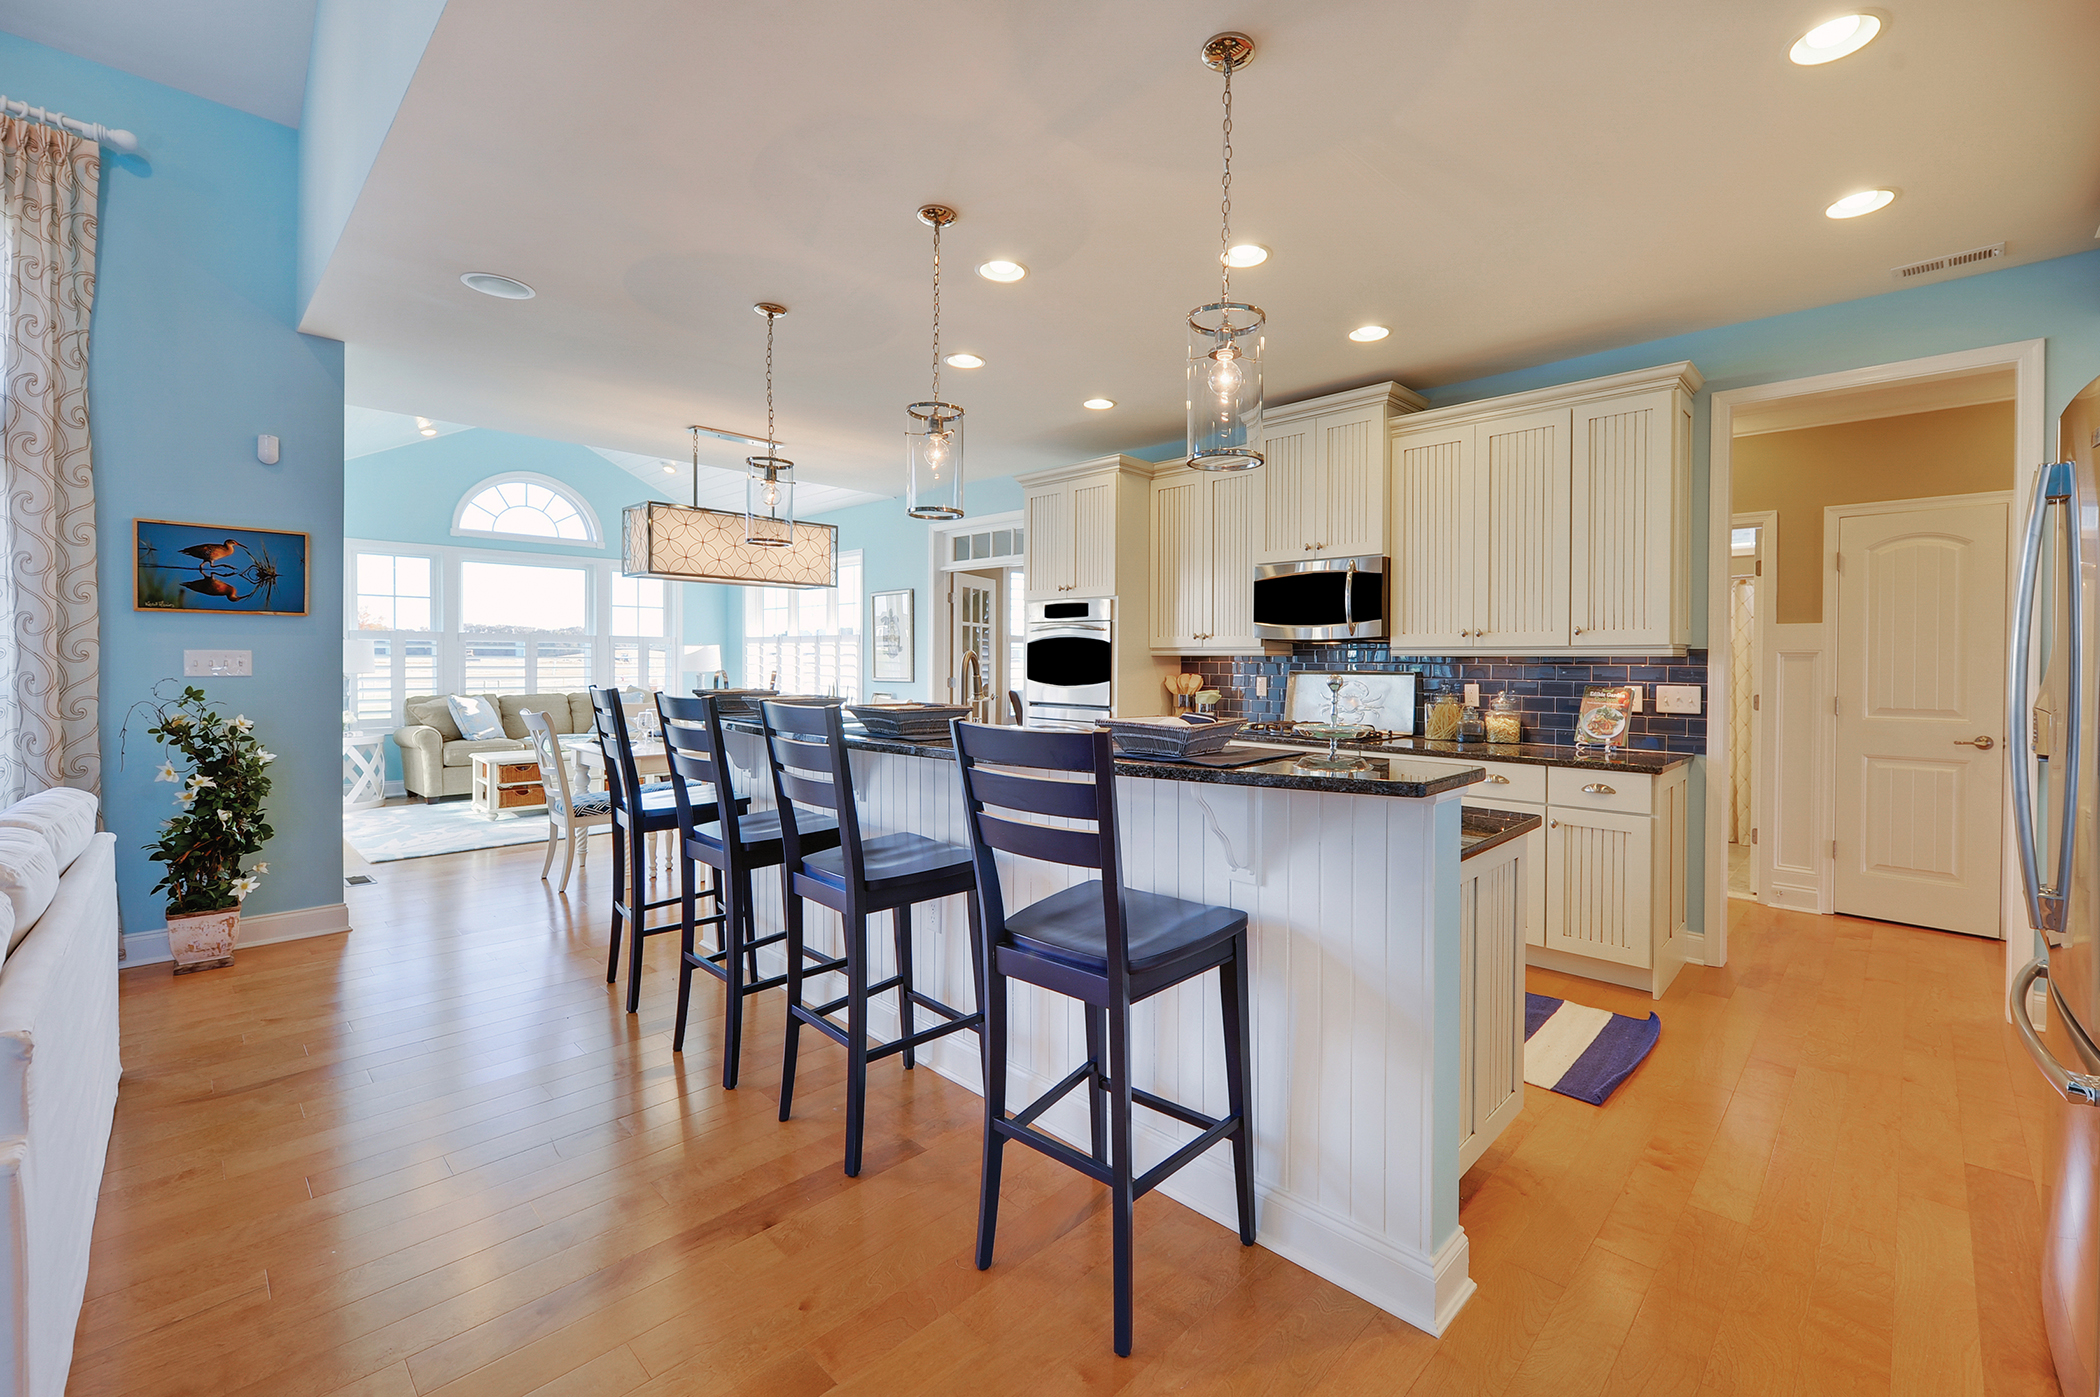 The combination of the bead board panel from the cabinets and wall paint color gives this casual kitchen a coastal feel. This casual design makes for a comfortable environment.